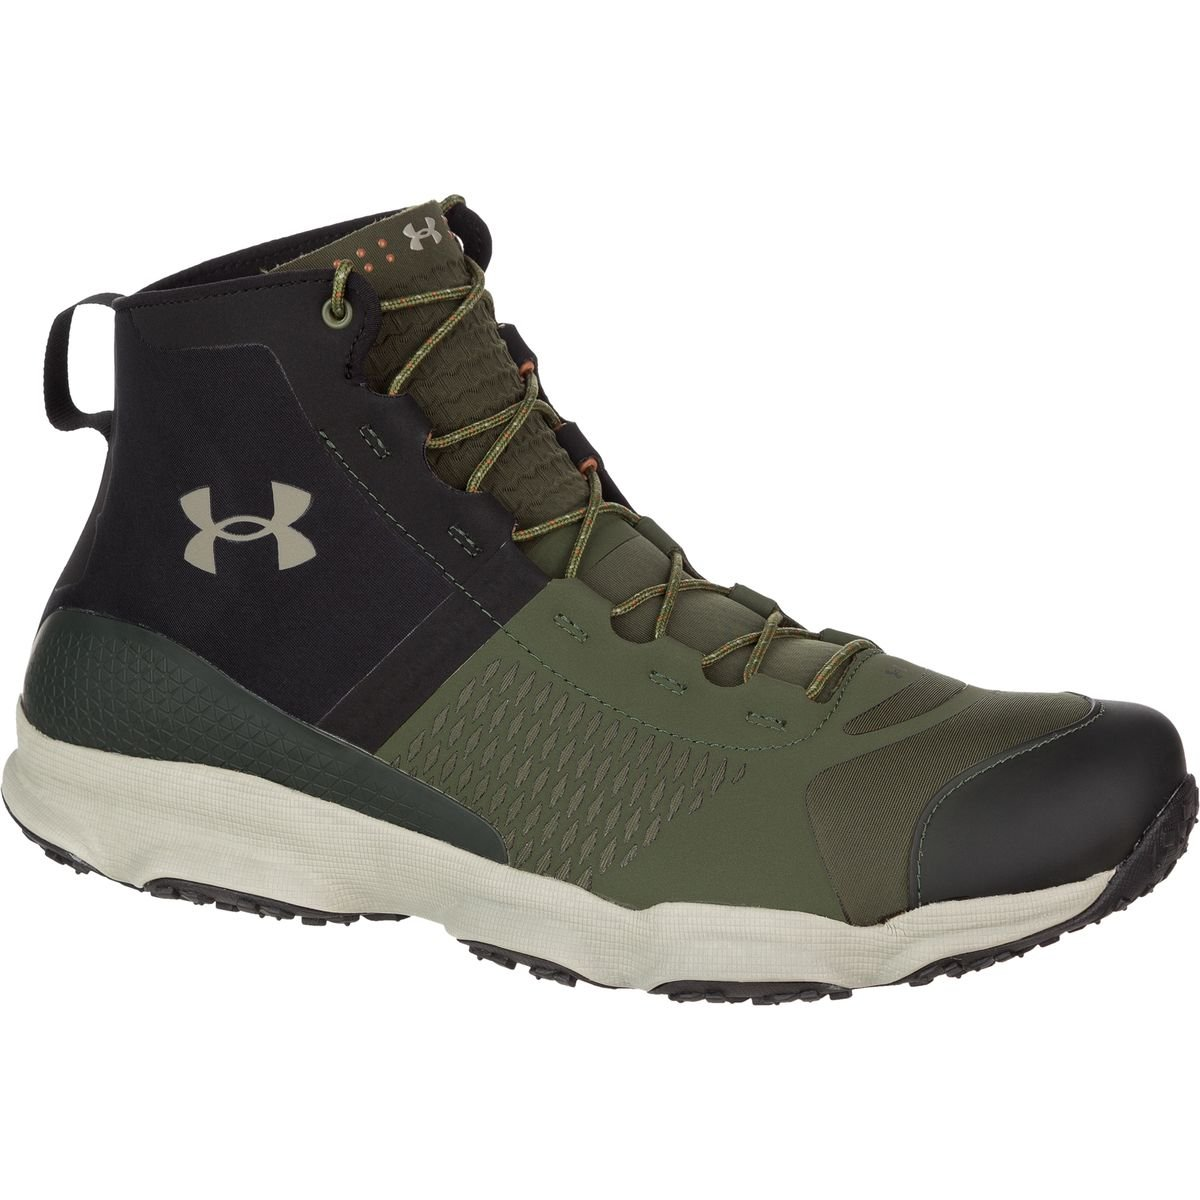 Under Armour メンズ Under Armour Men's Speedfit Hike Mid B00RW8G7XC 11 D(M) US|Rifle Green/Black/Stone Rifle Green/Black/Stone 11 D(M) US